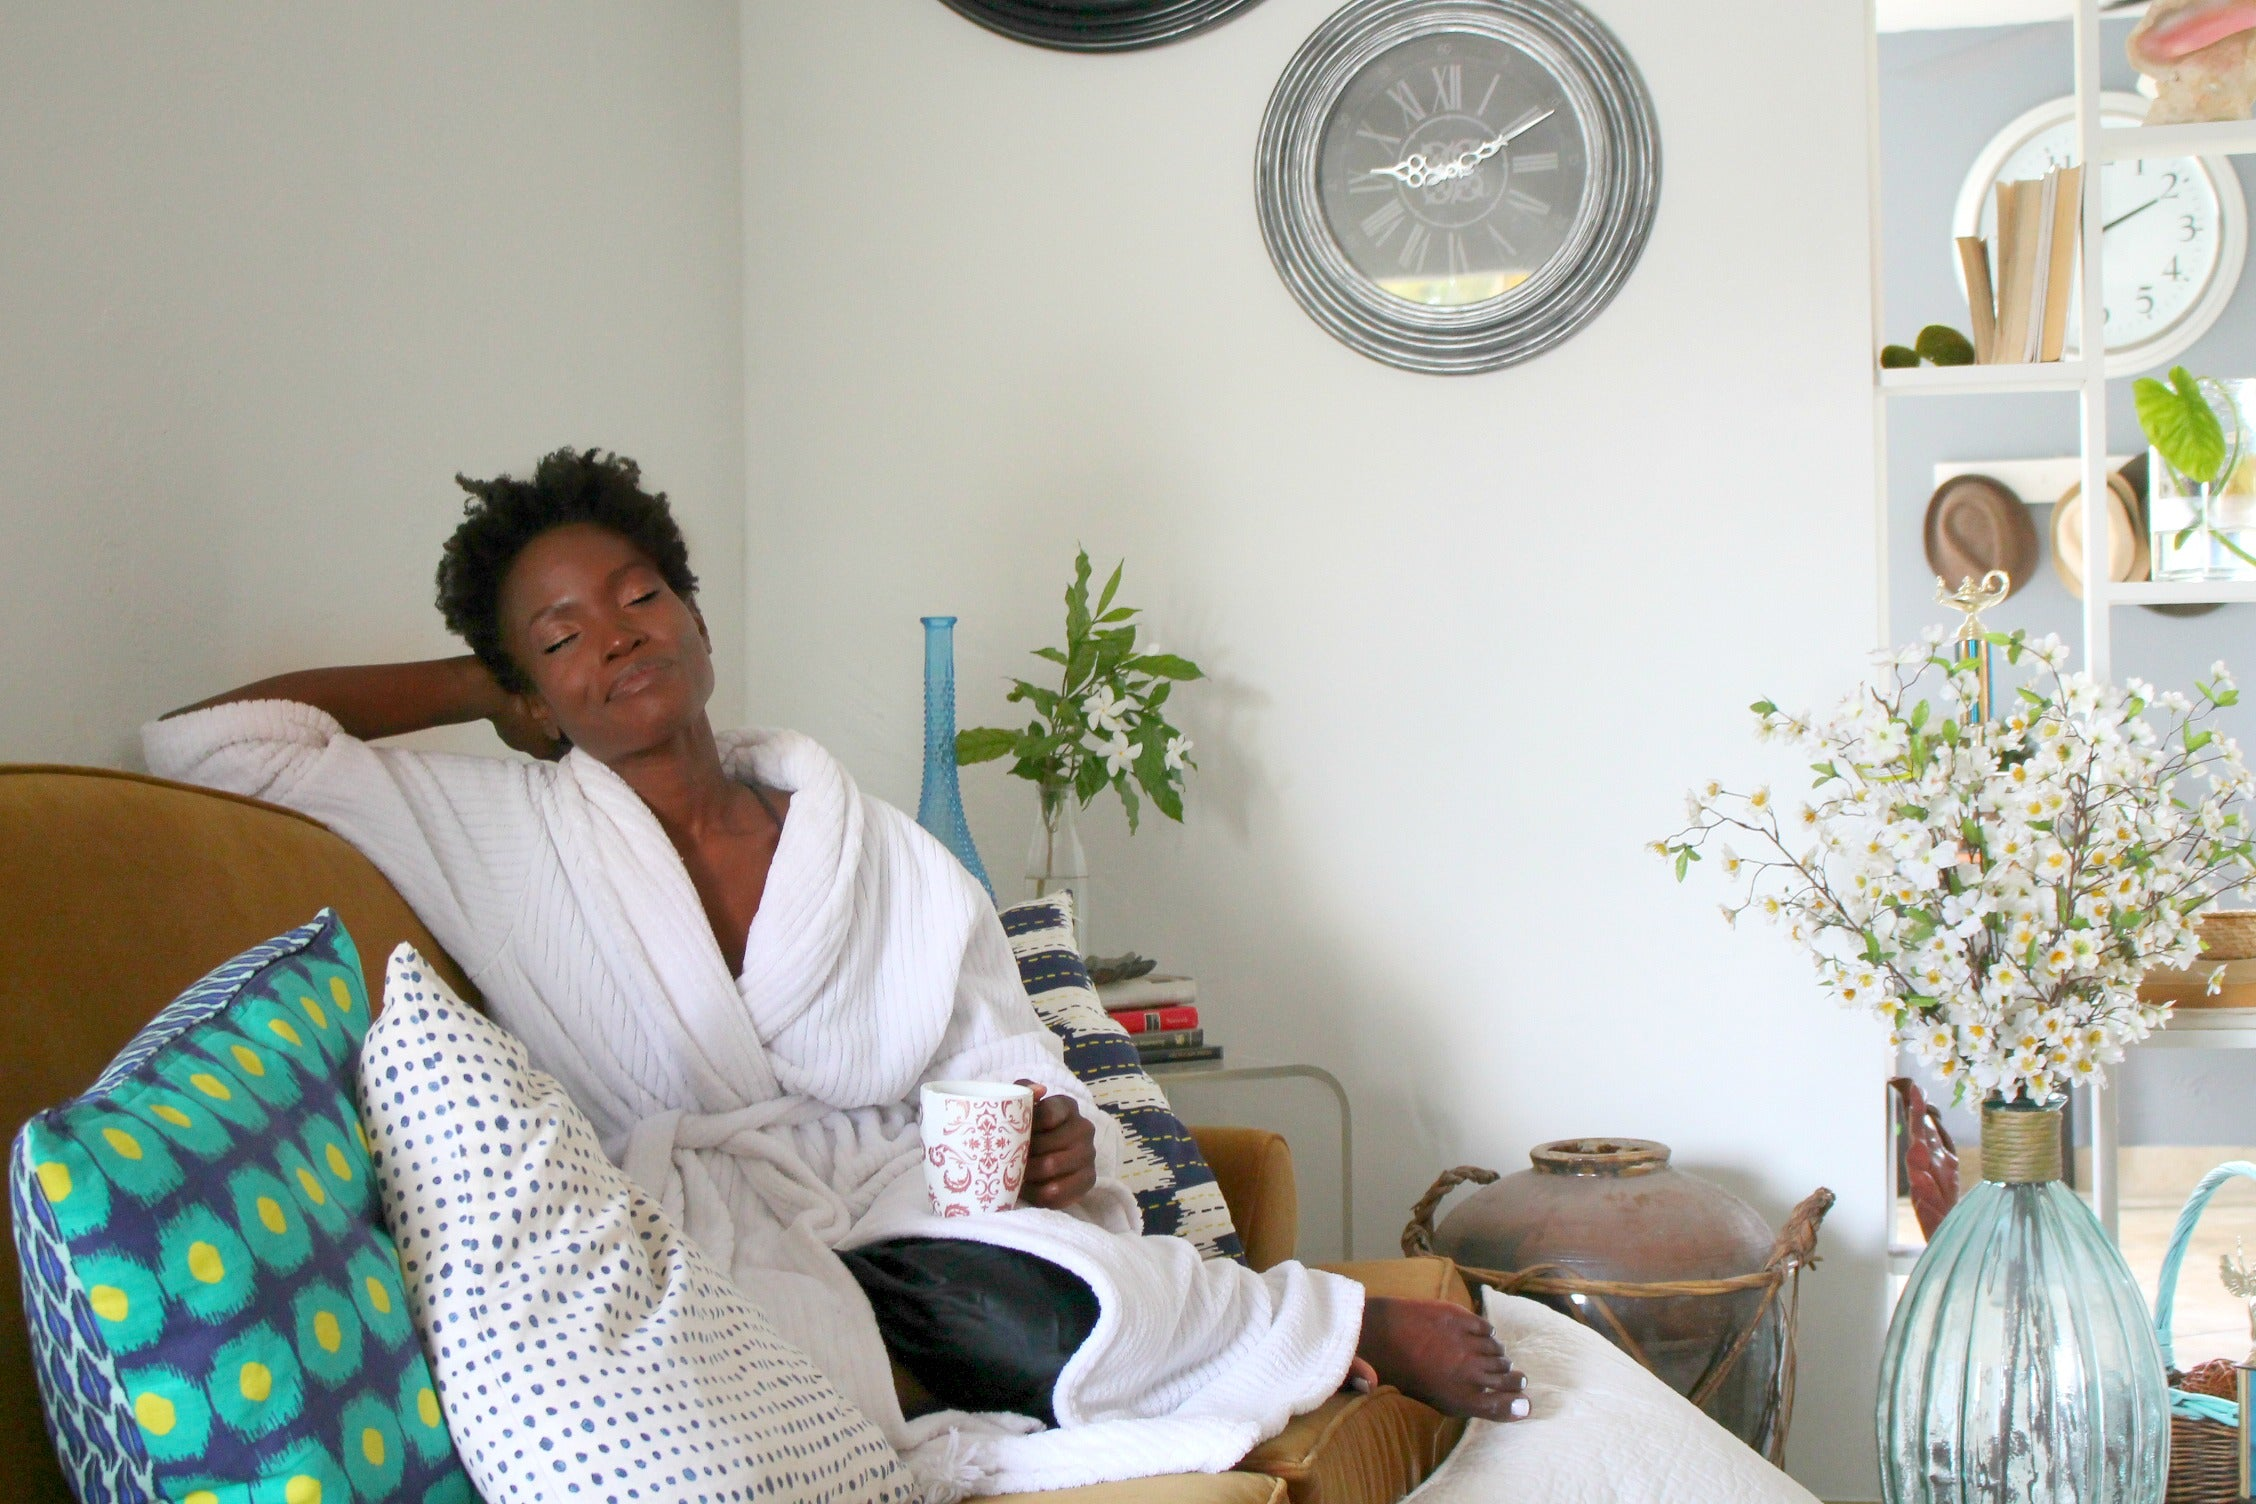 black woman relaxing in robe